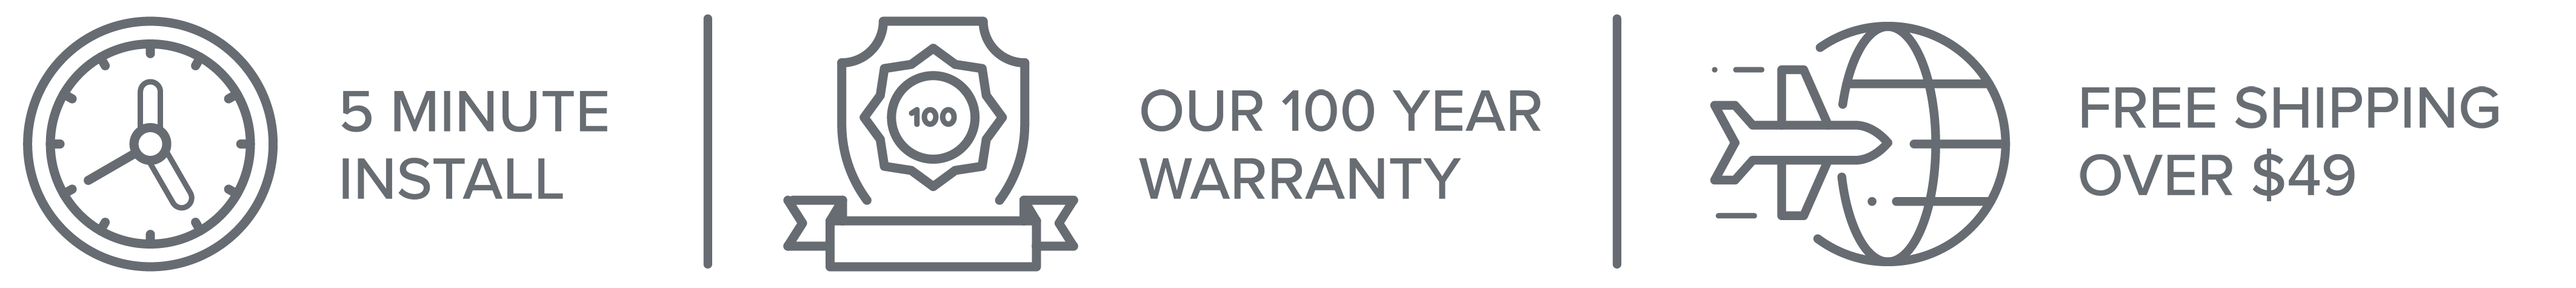 5 Minute Install, Our 100 Year Warranty and Free Shipping on orders over $49